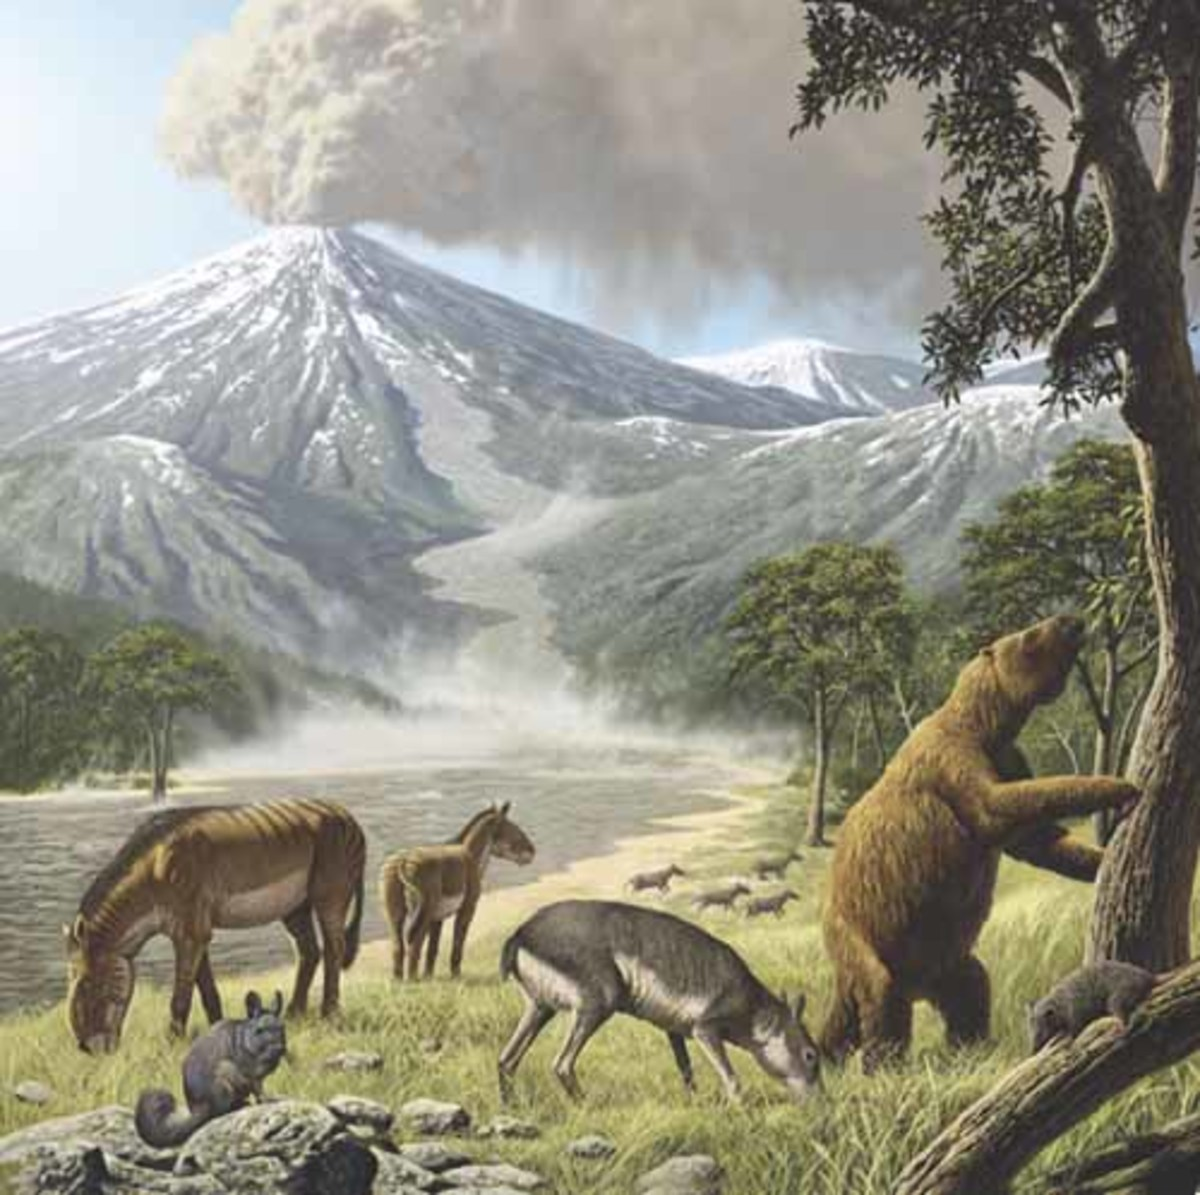 Tinguiririca's fauna shortly before burial: (from left to right) the rodent Eoviscaccia, the notoungulates Eomorphippus, Santiagorothia, and Archaeotypotherium, the ground sloth Pseudoglyptodon, and the marsupial Klohnia. Art by Raúl Martín.